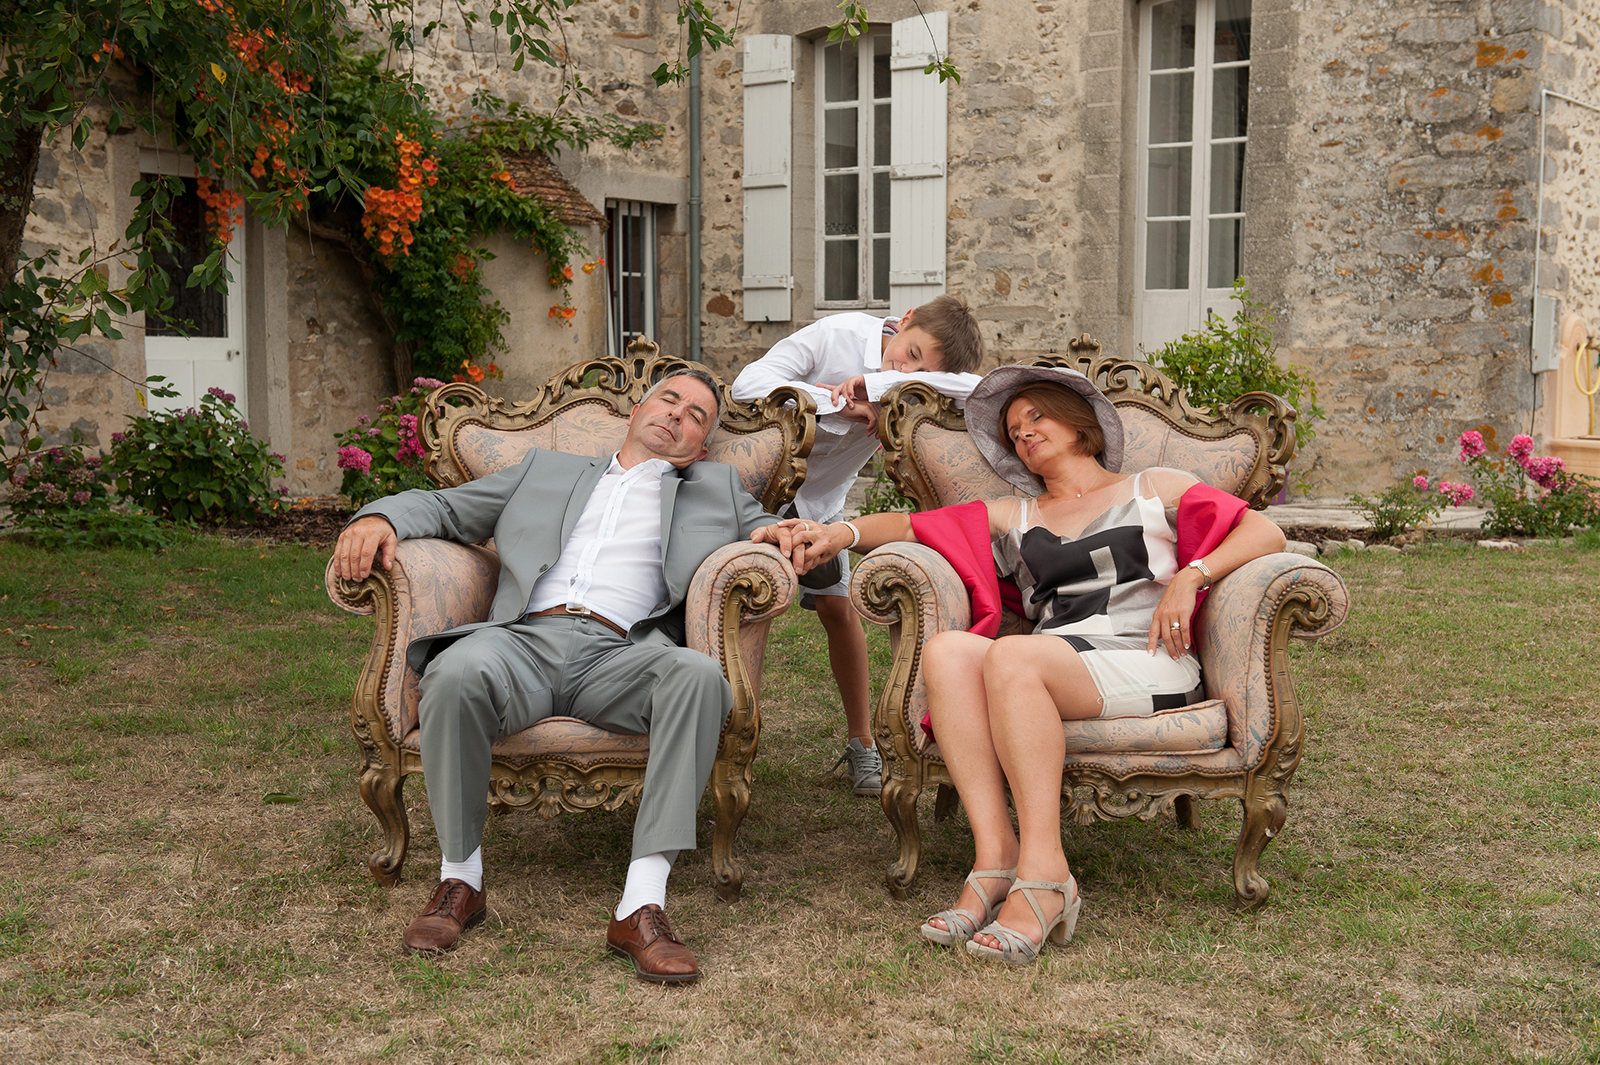 Peggy-Victor-photo-mariage-sabrina-godemert-photographe-seine-et-marne096